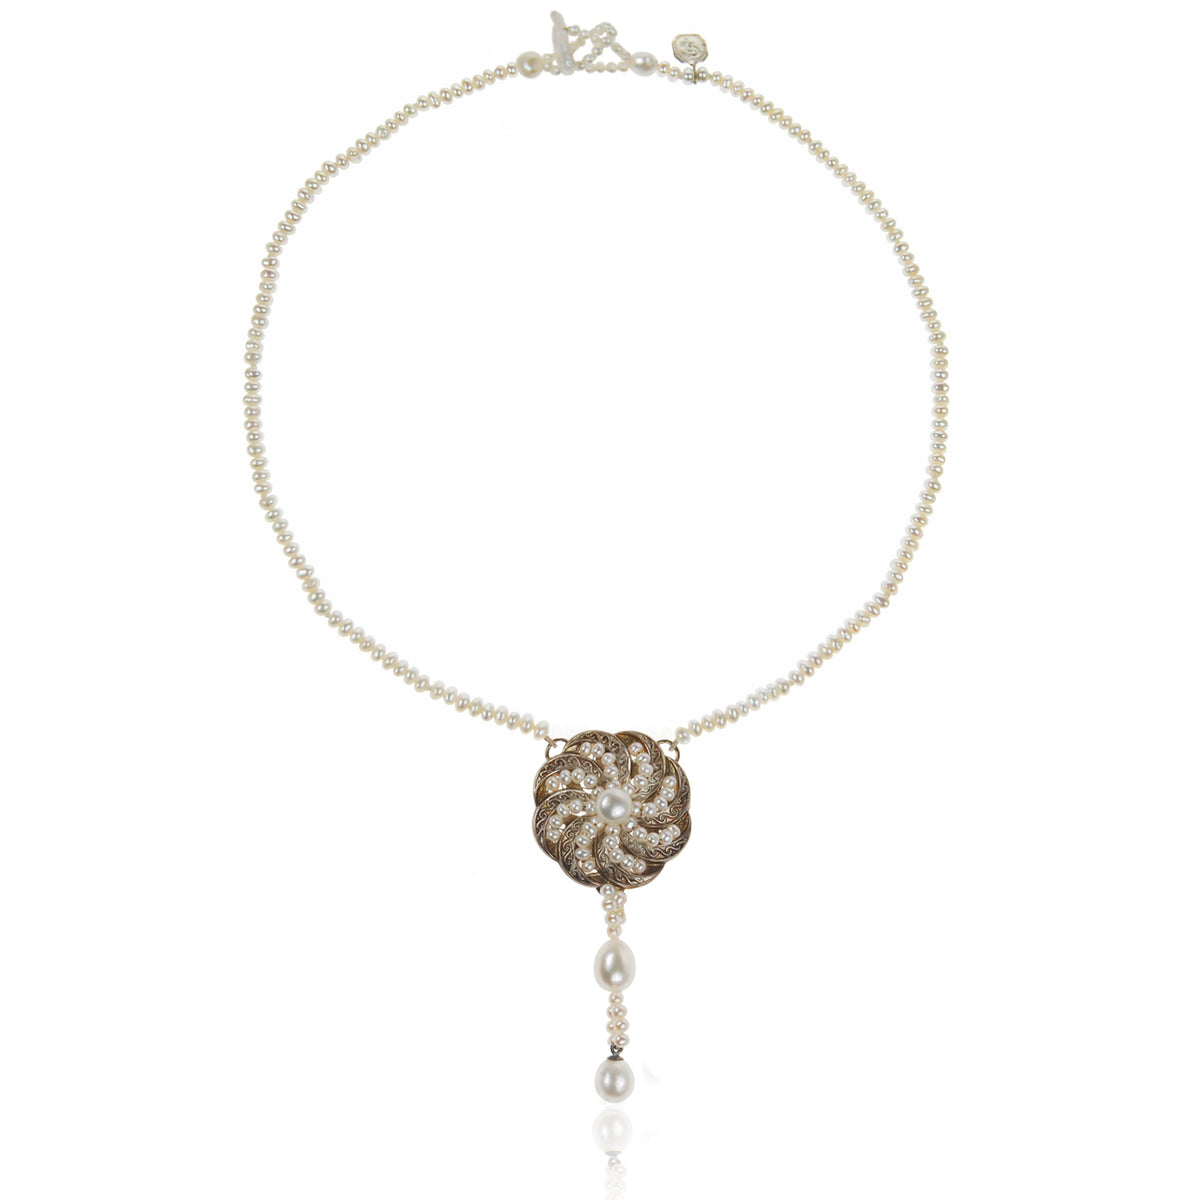 White Seed Pearl & Silver 'Swirl' Necklace